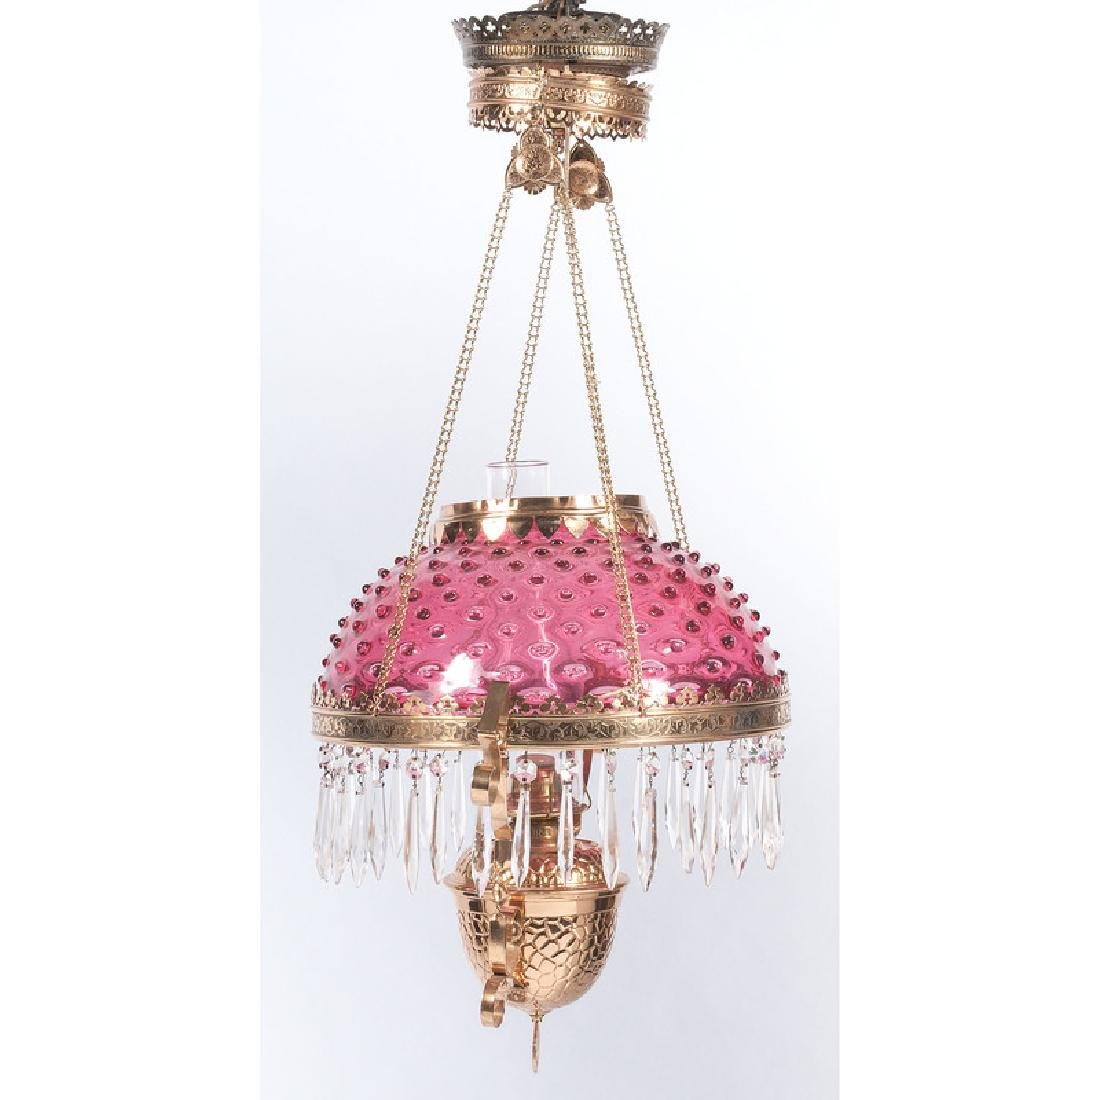 Cranberry Glass Chandelier with Prisms - 2